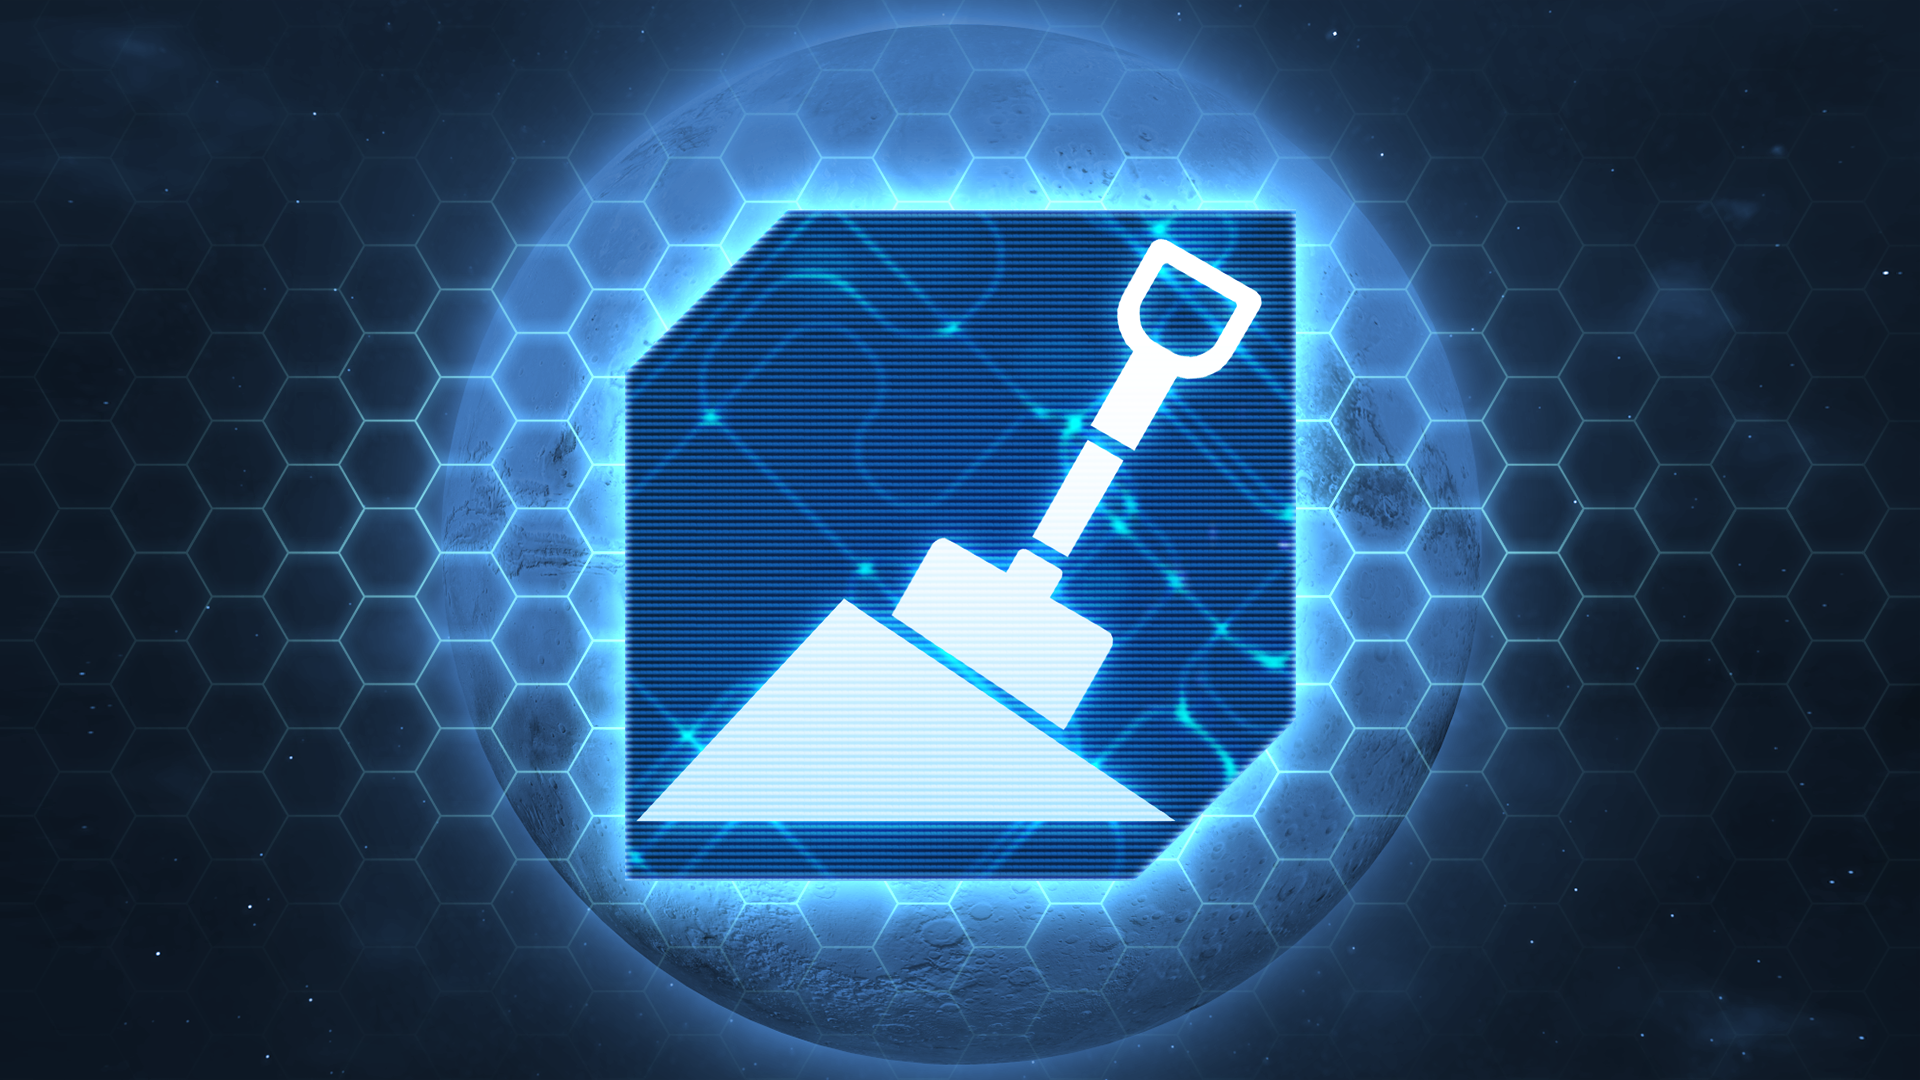 Icon for Move this Mountain!